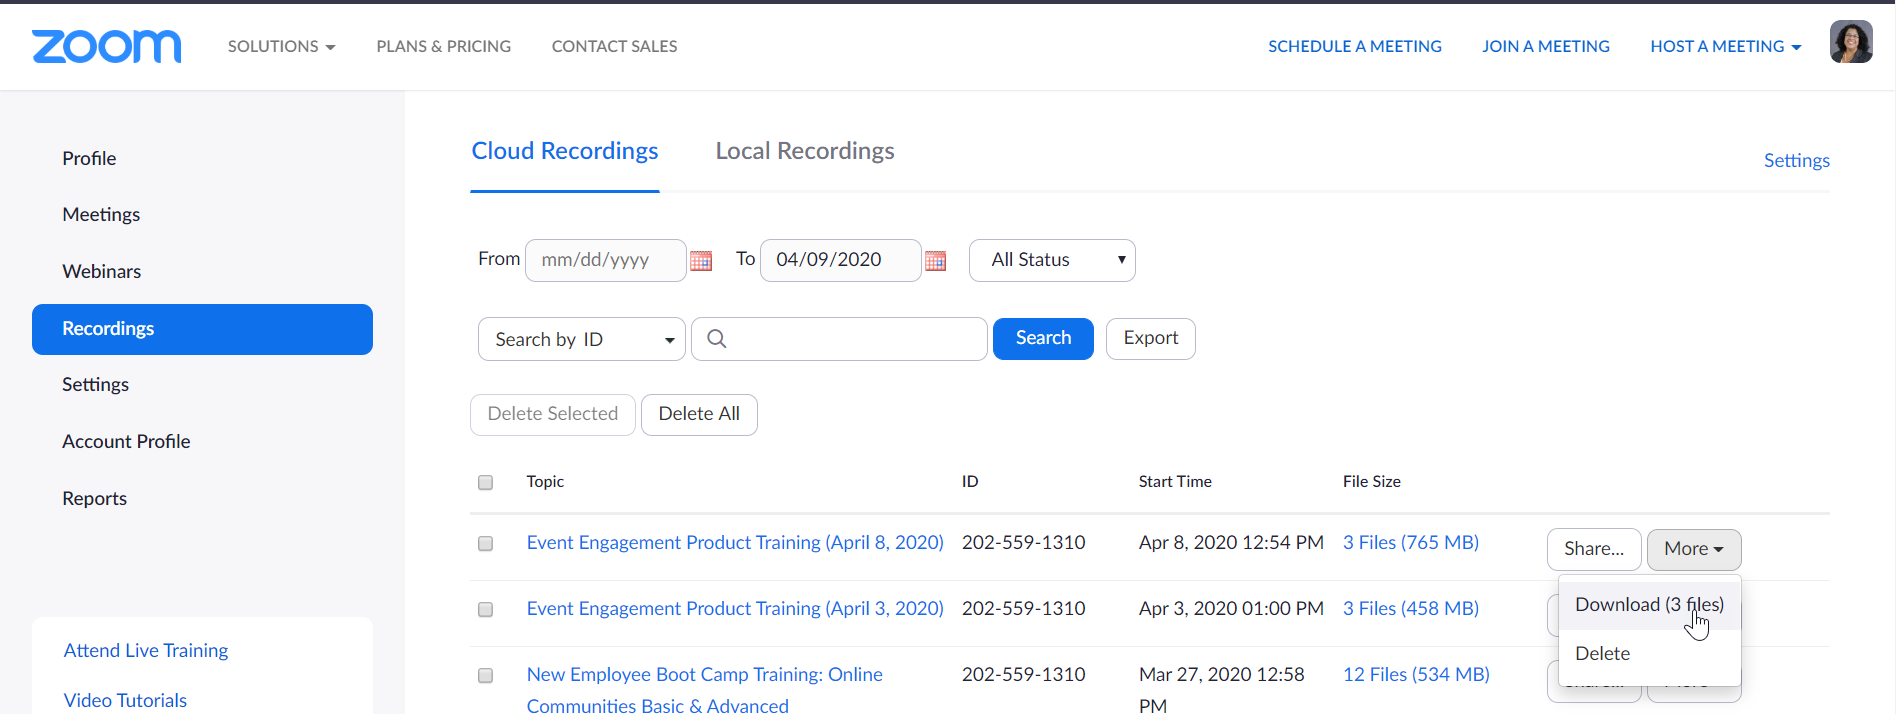 recordings-cloud_recordings-more_options-smaller.png